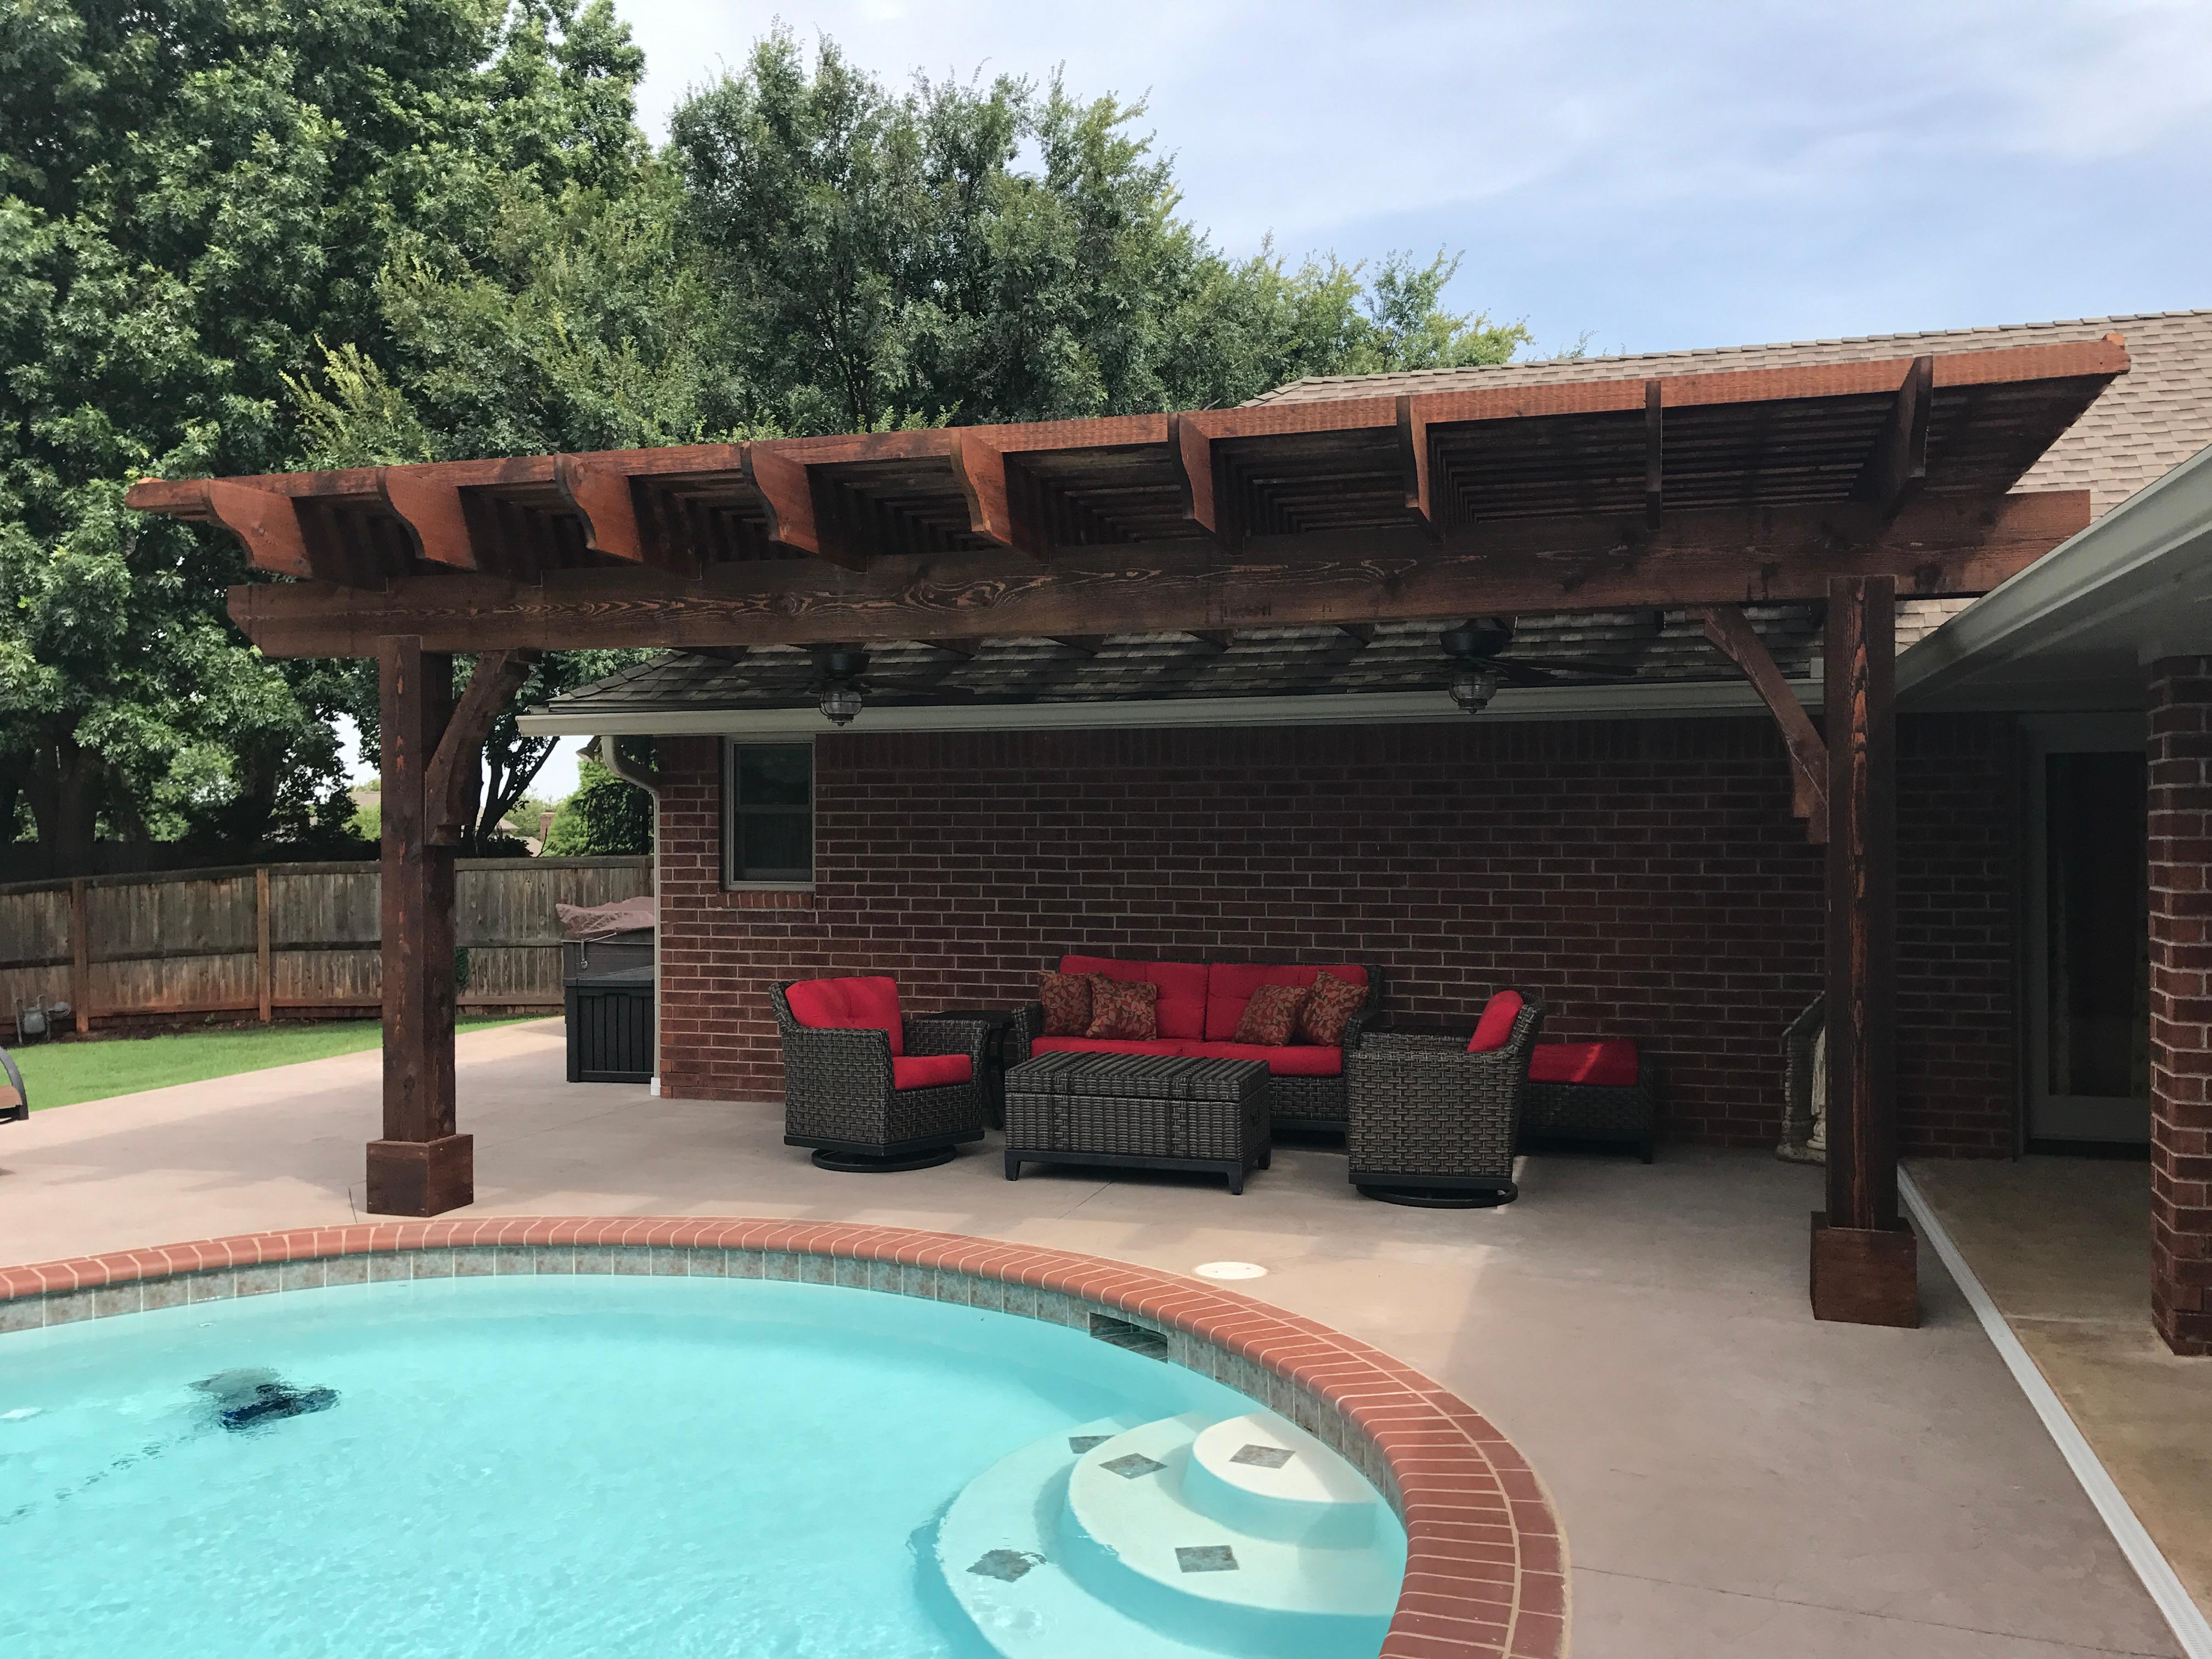 Frankie S Brick Repair Services Oklahoma City Ok